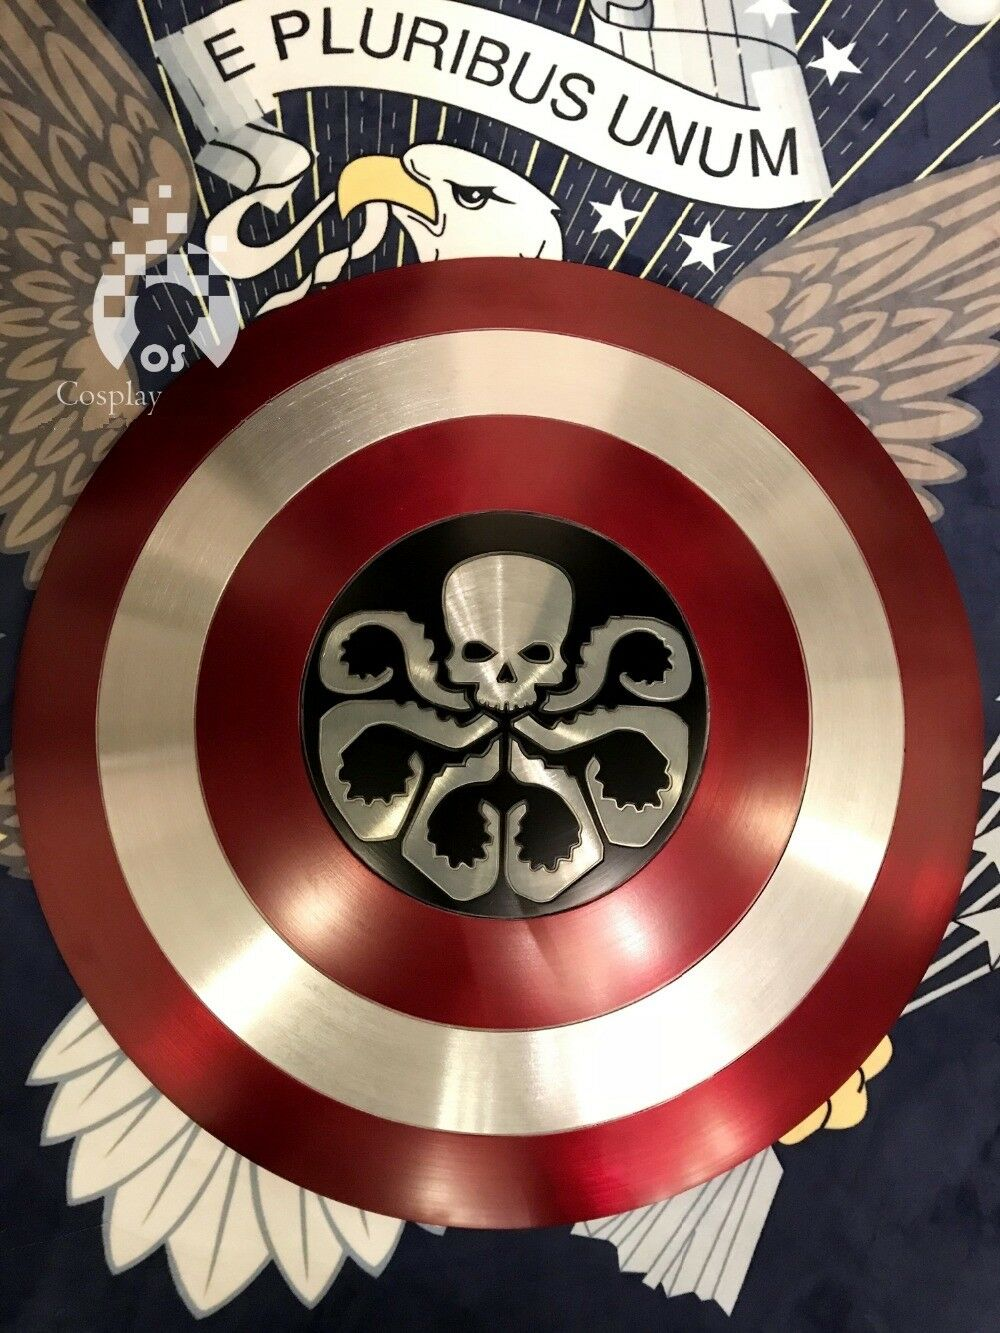 CAPITAN AMERICA ESCUDO Hydra Aluminio Escala 1/1,  cosplay metal Shield 2018